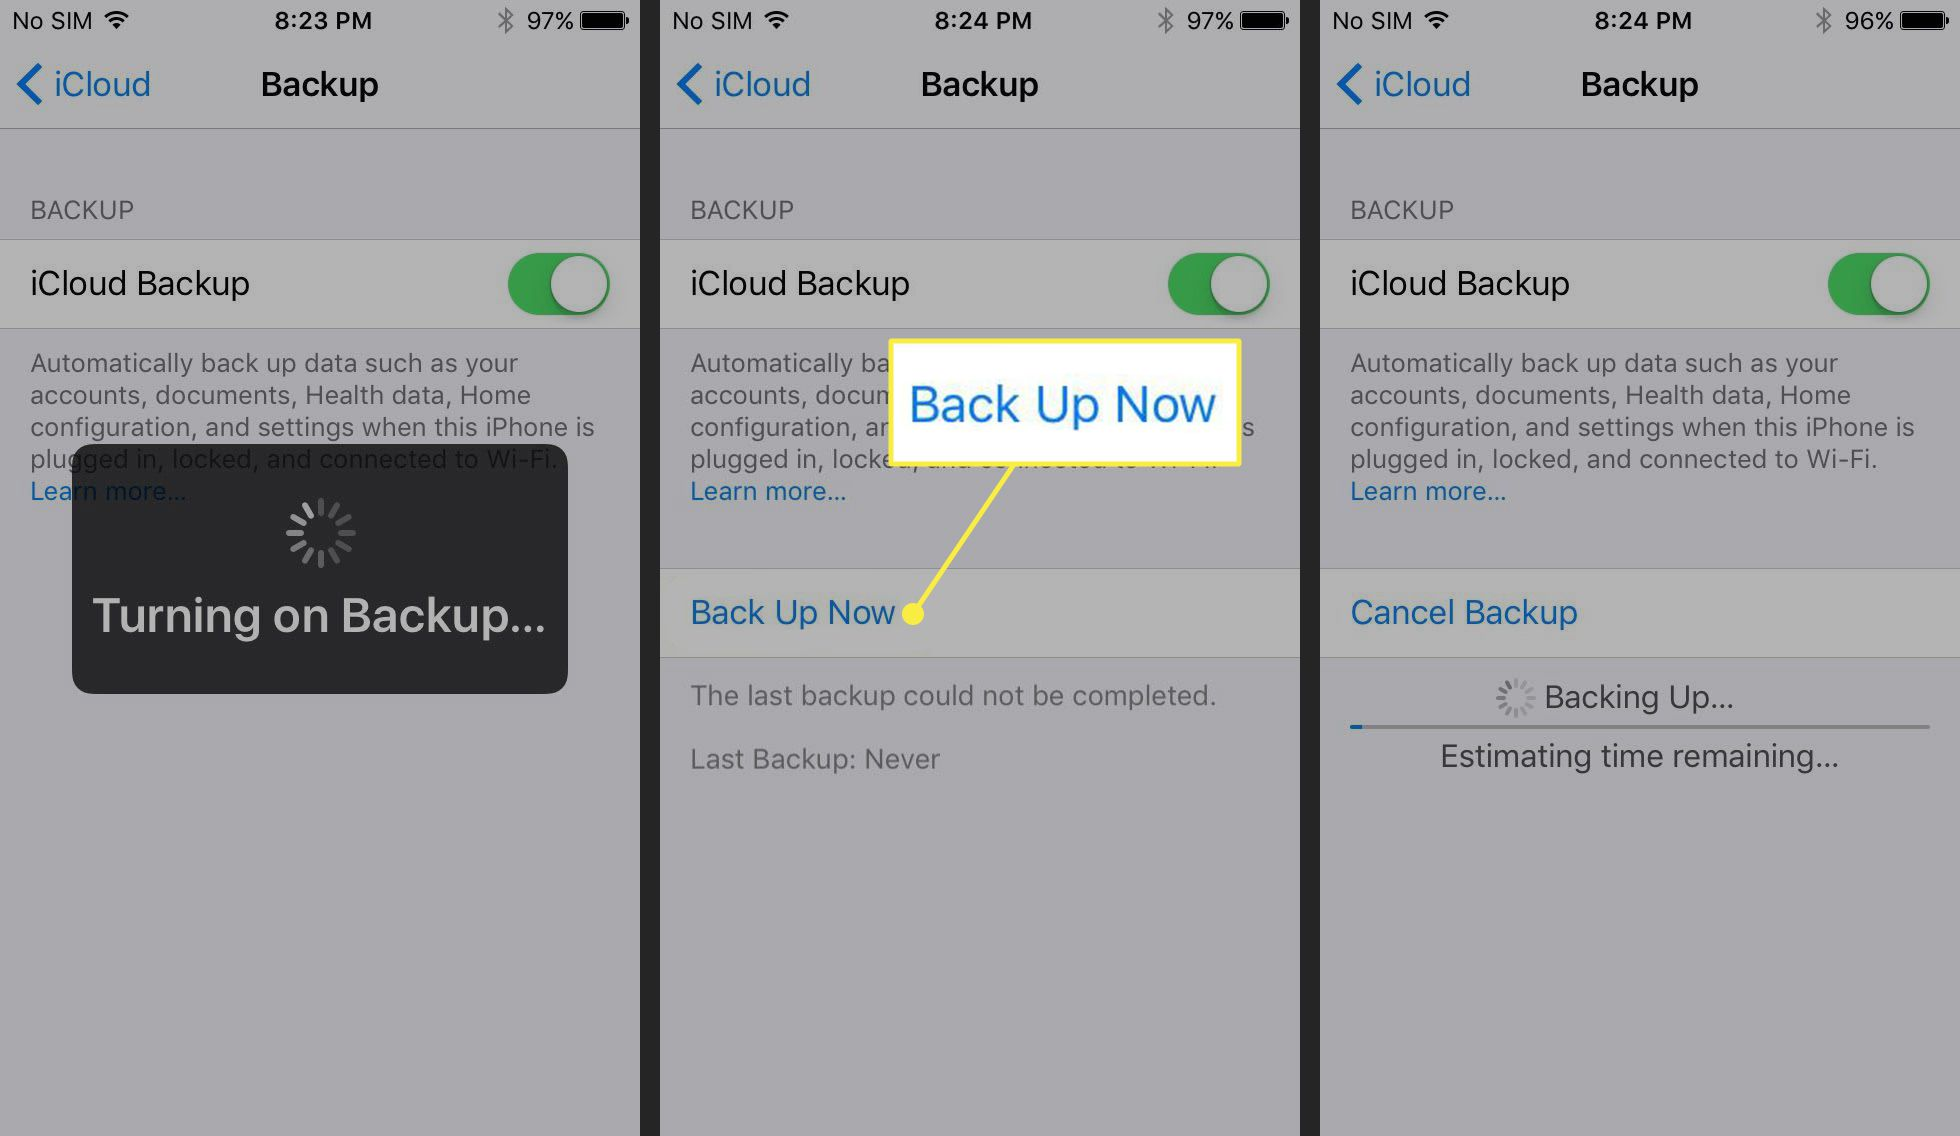 Starting an iCloud Backup on an iPhone